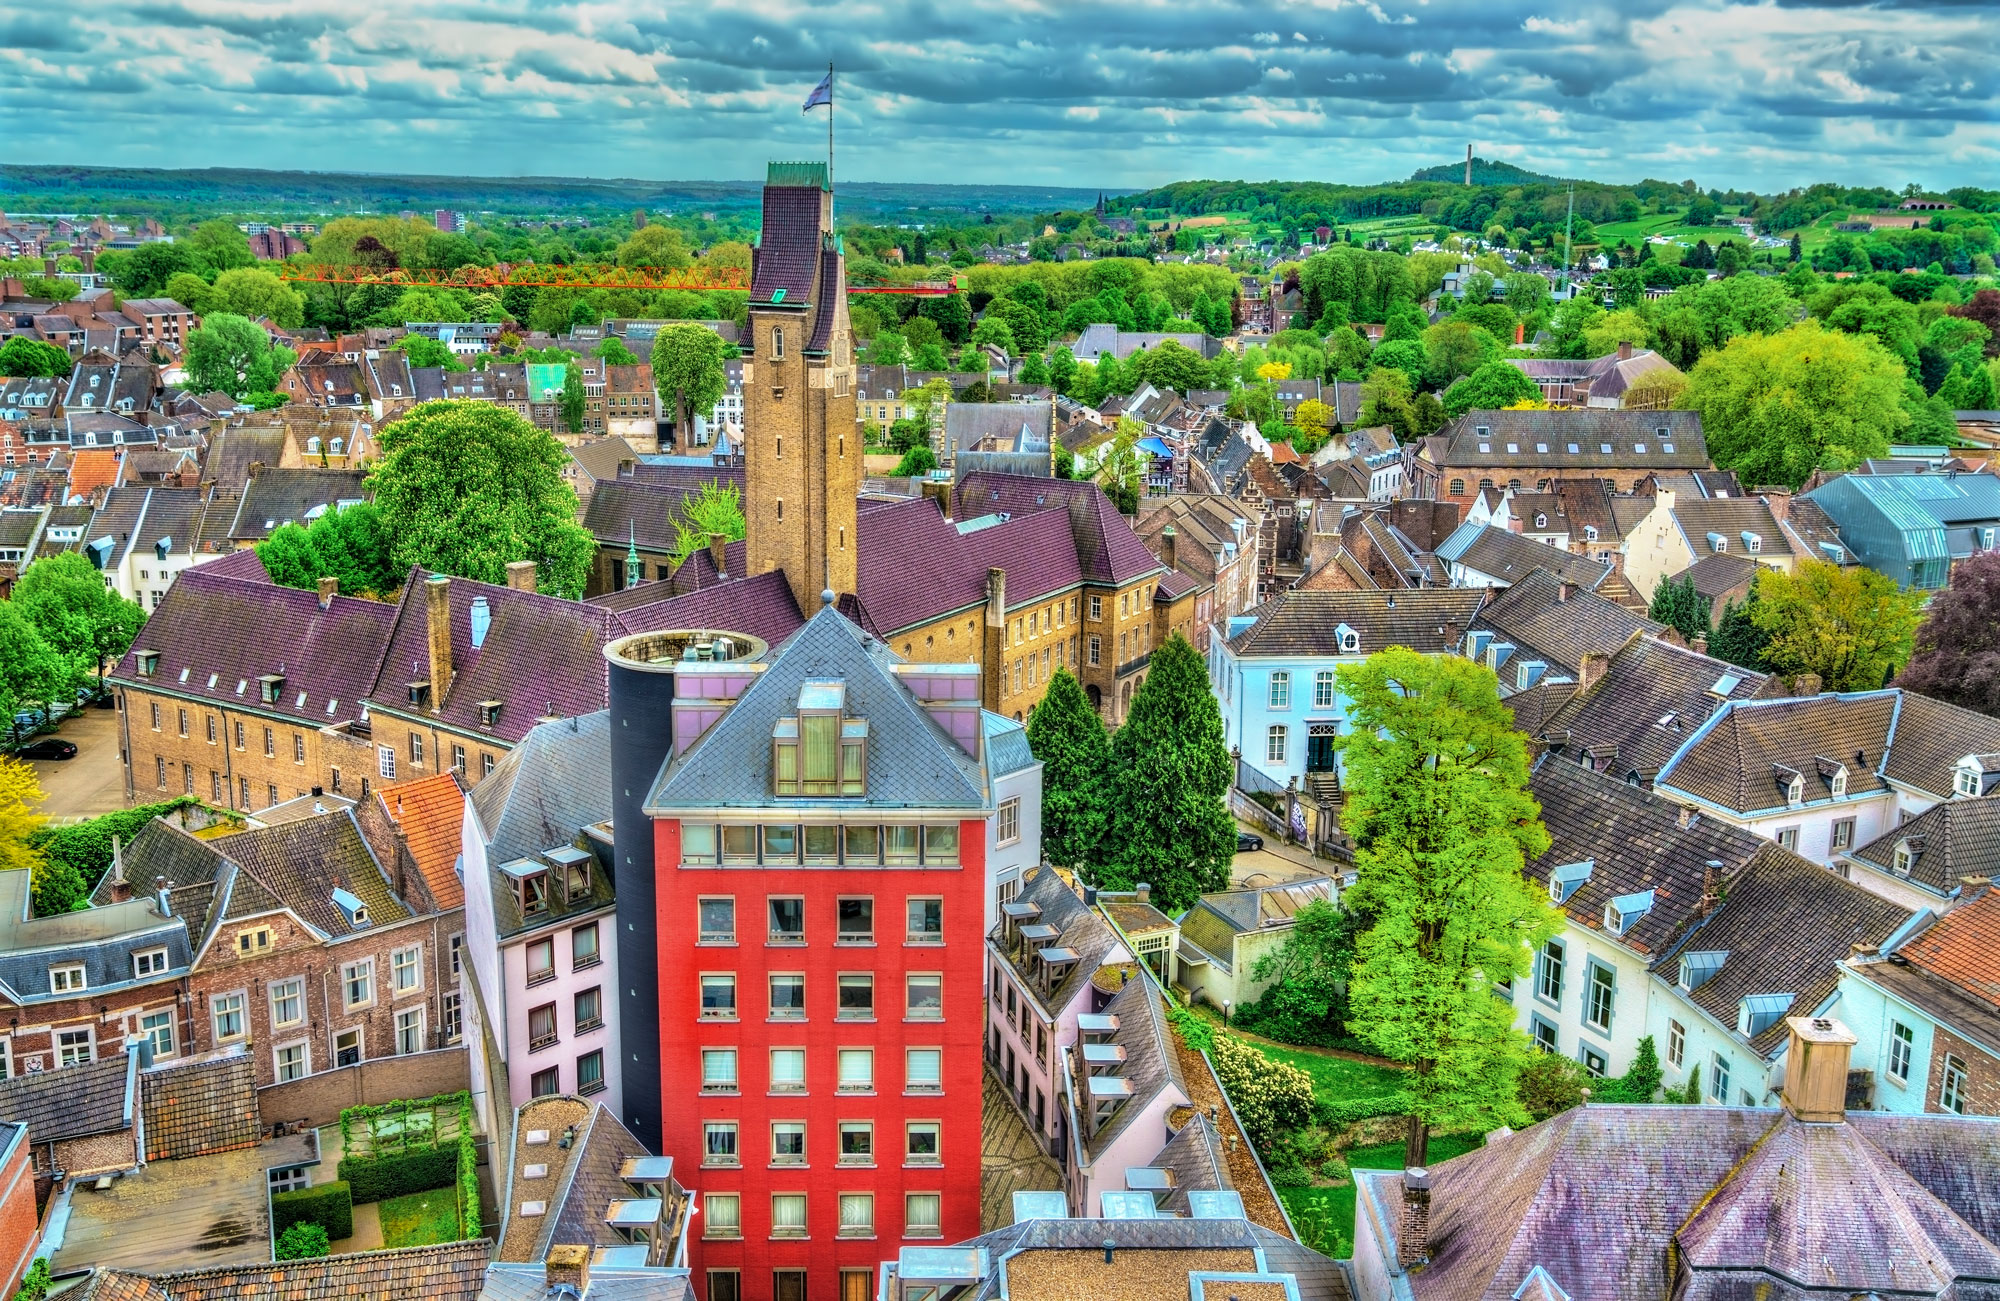 Aerial view of the old town of Maastricht, the Netherlands